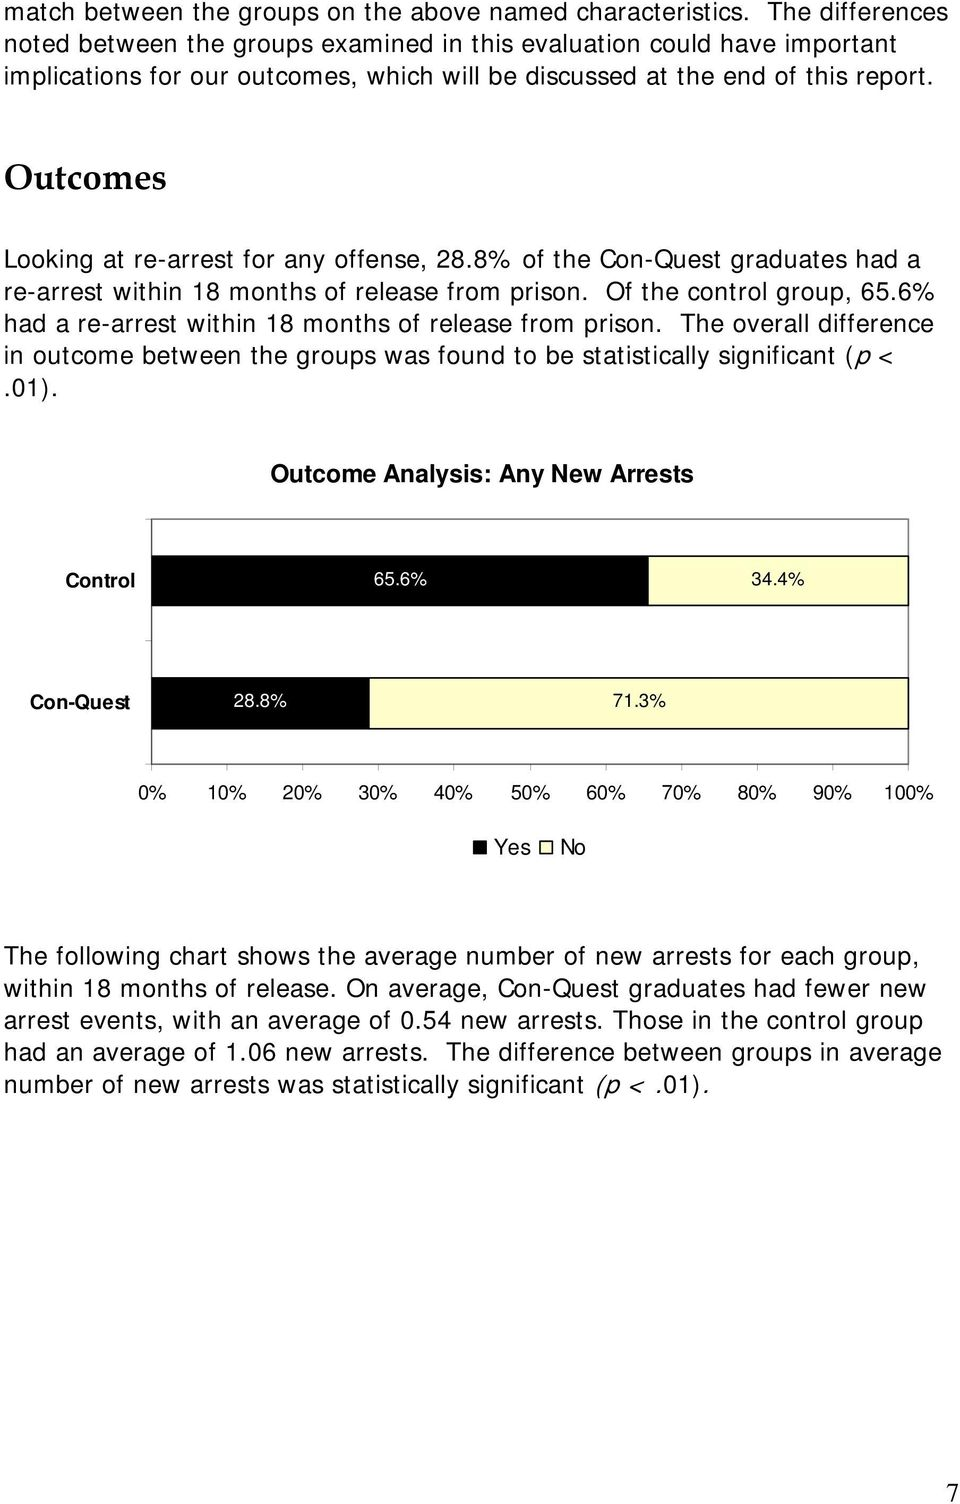 Outcomes Looking at re-arrest for any offense, 28.8% of the graduates had a re-arrest within 18 months of release from prison. Of the control group, 65.